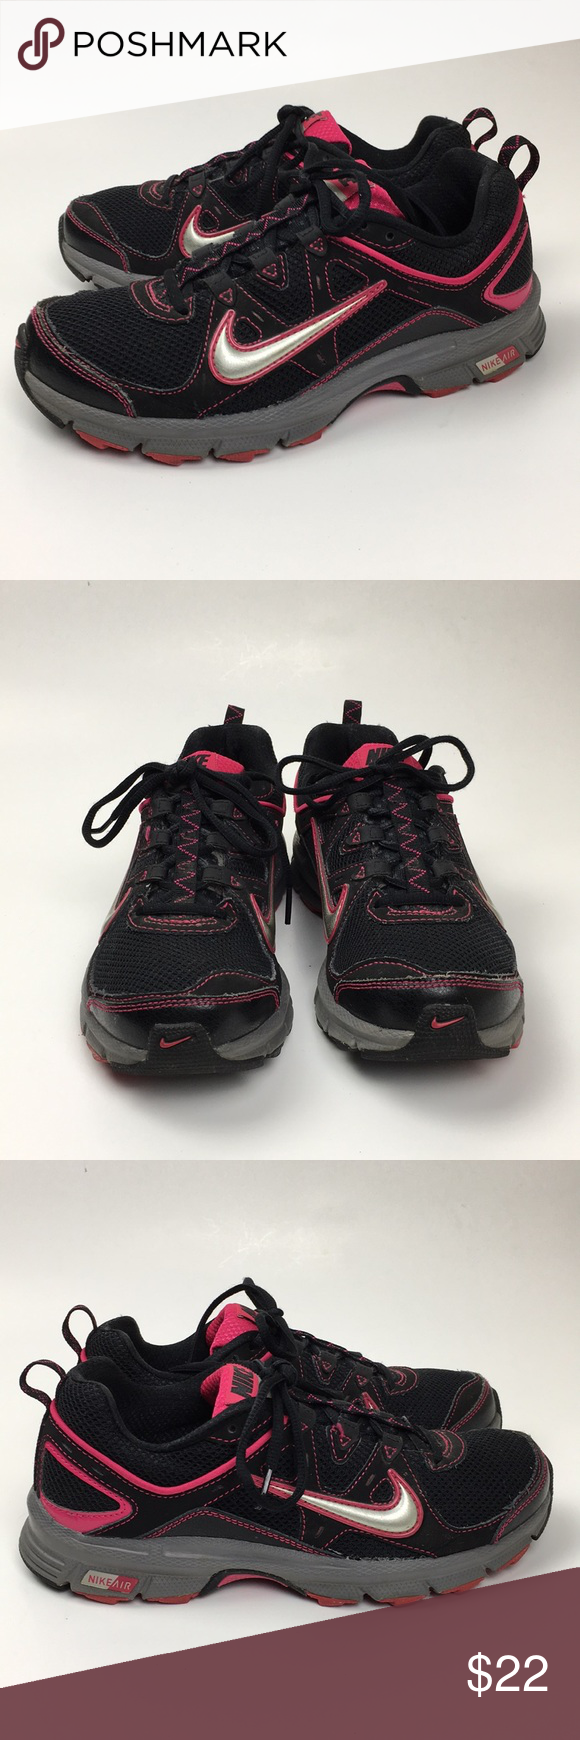 3860a030c52 Nike Air-Alvord 9 Black And Pink Gym Shoe Nike Air-Alvord 9 Trail ...